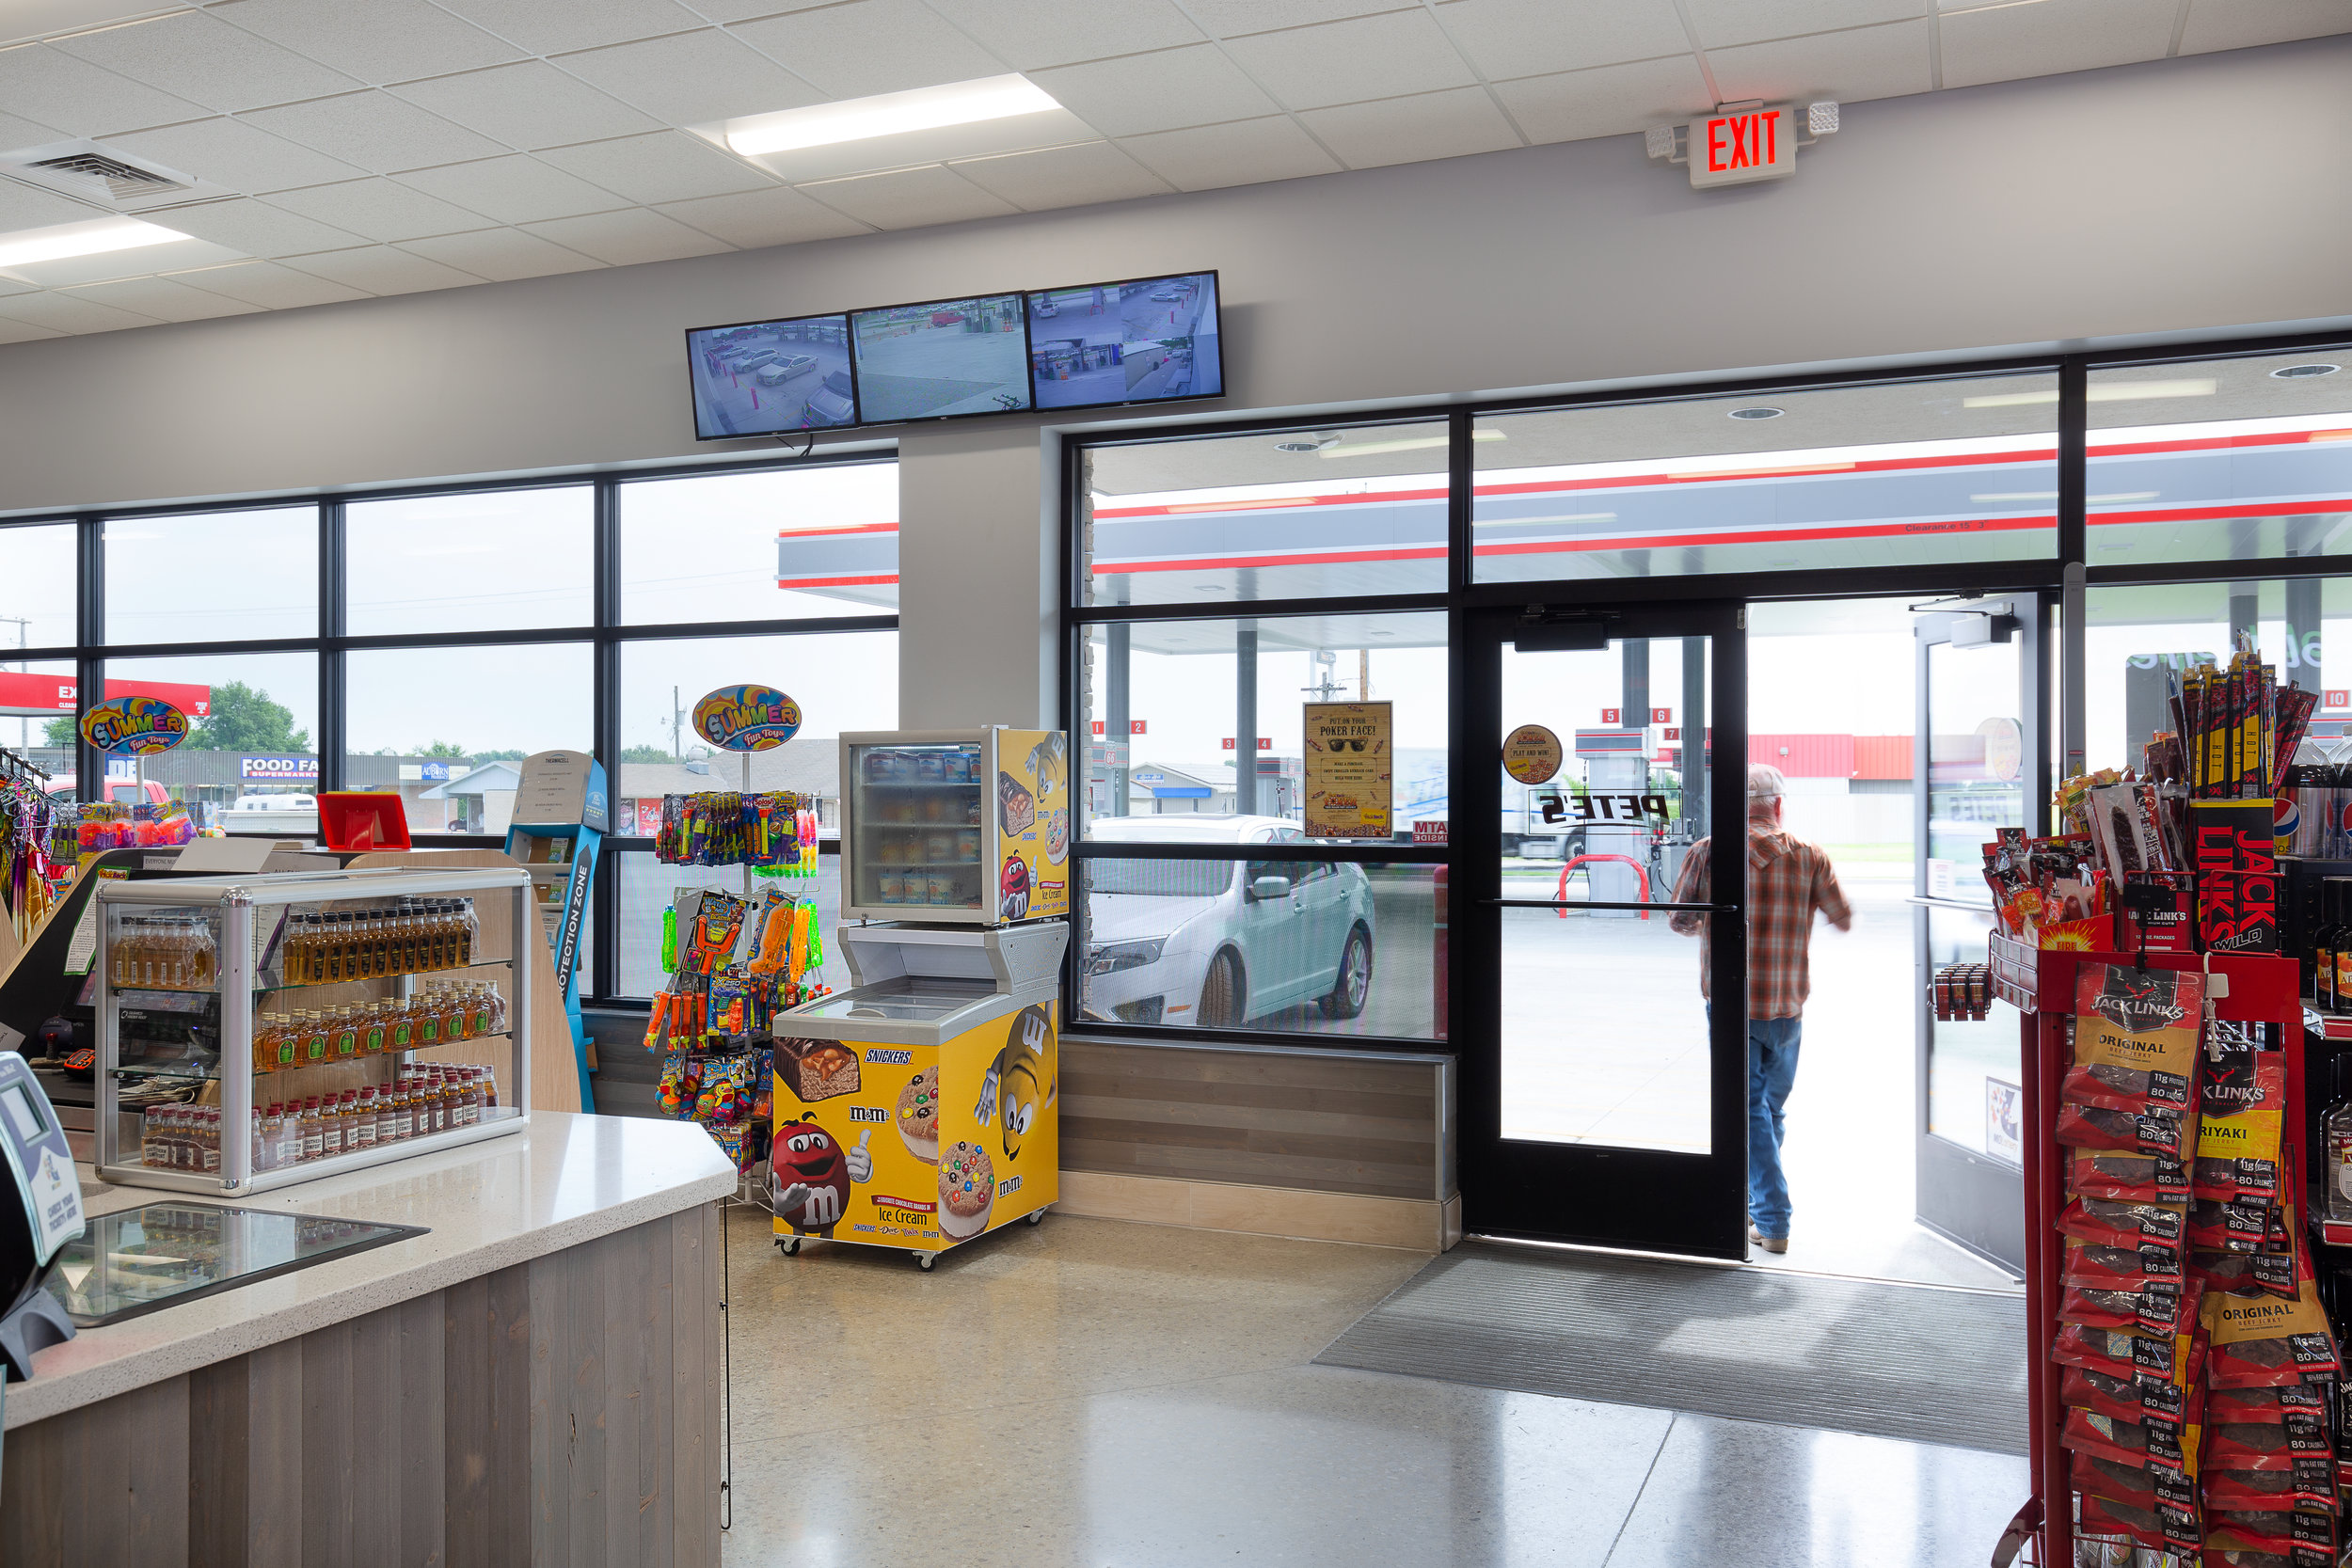 12_ThompsonPhotography_20180607_Pete's+Convenience+Store.jpg